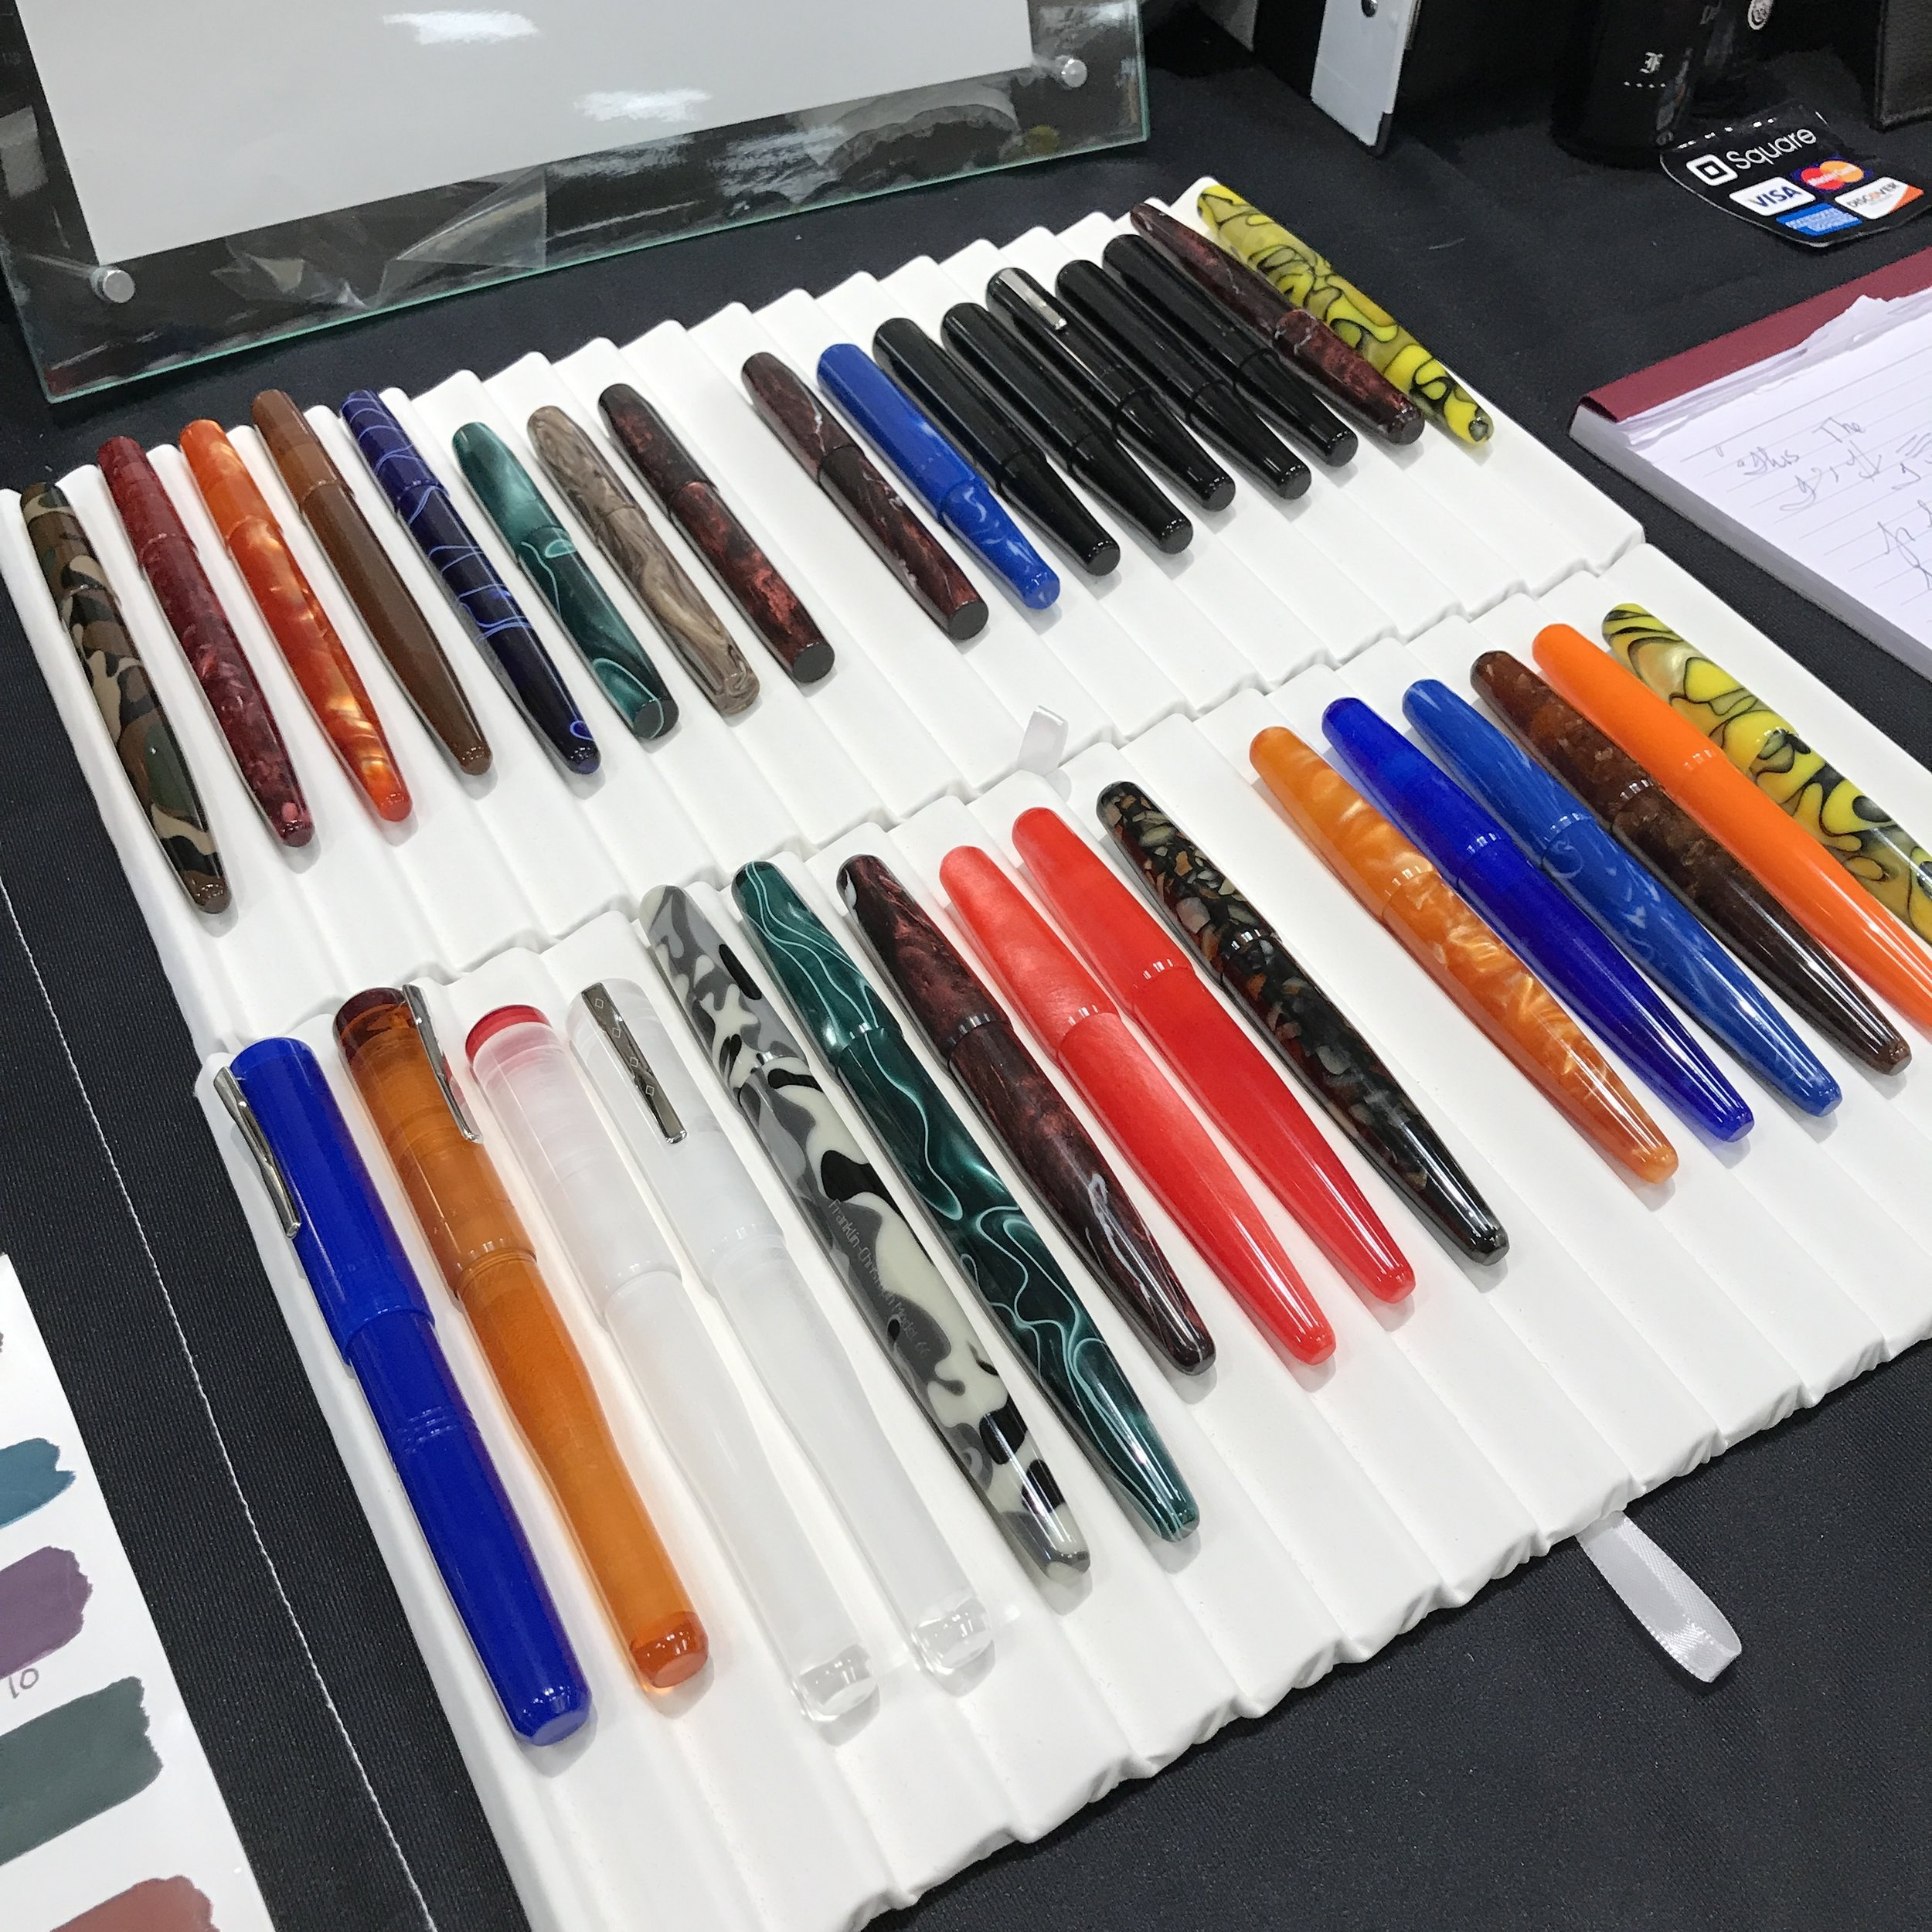 The Franklin-Christoph prototype acrylics that were left on Sunday. A couple of these tempted me, but I ultimately went with one of their Fantasy Sheaffer Legacies (more below).